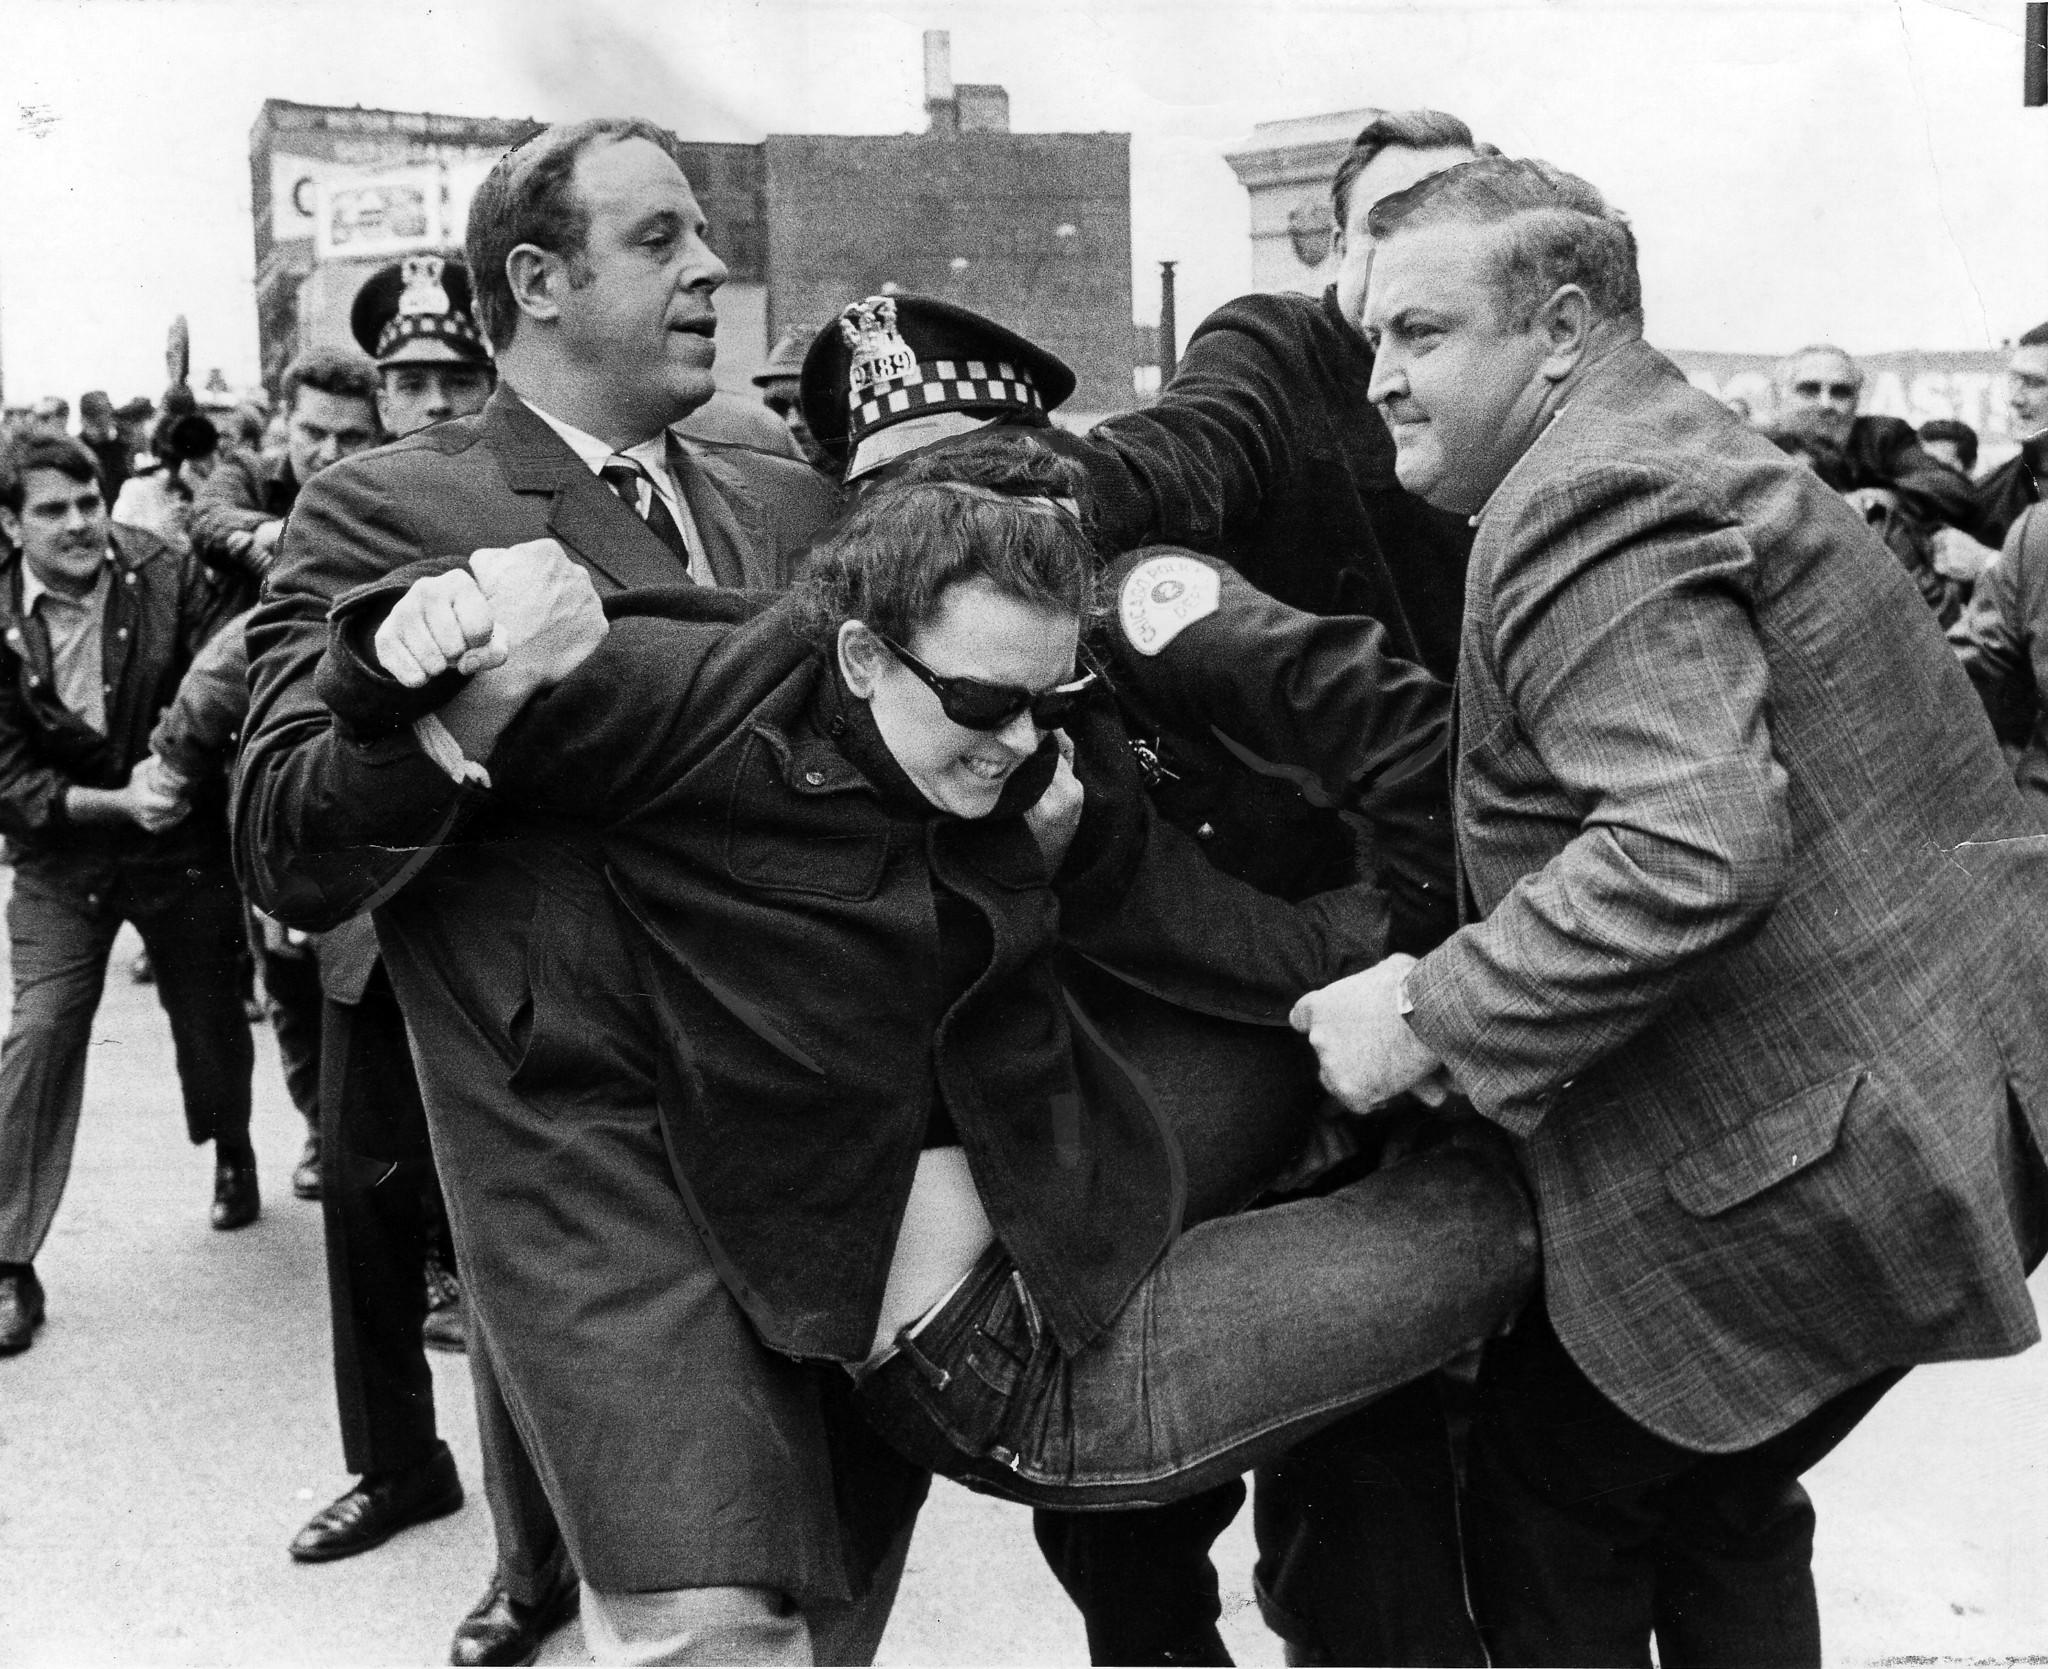 Richard Elrod, left, an assistant city corporation counsel, tries to subdue a rioter during the Days of Rage riots. Elrod was partially paralyzed during a scuffle later in the day.